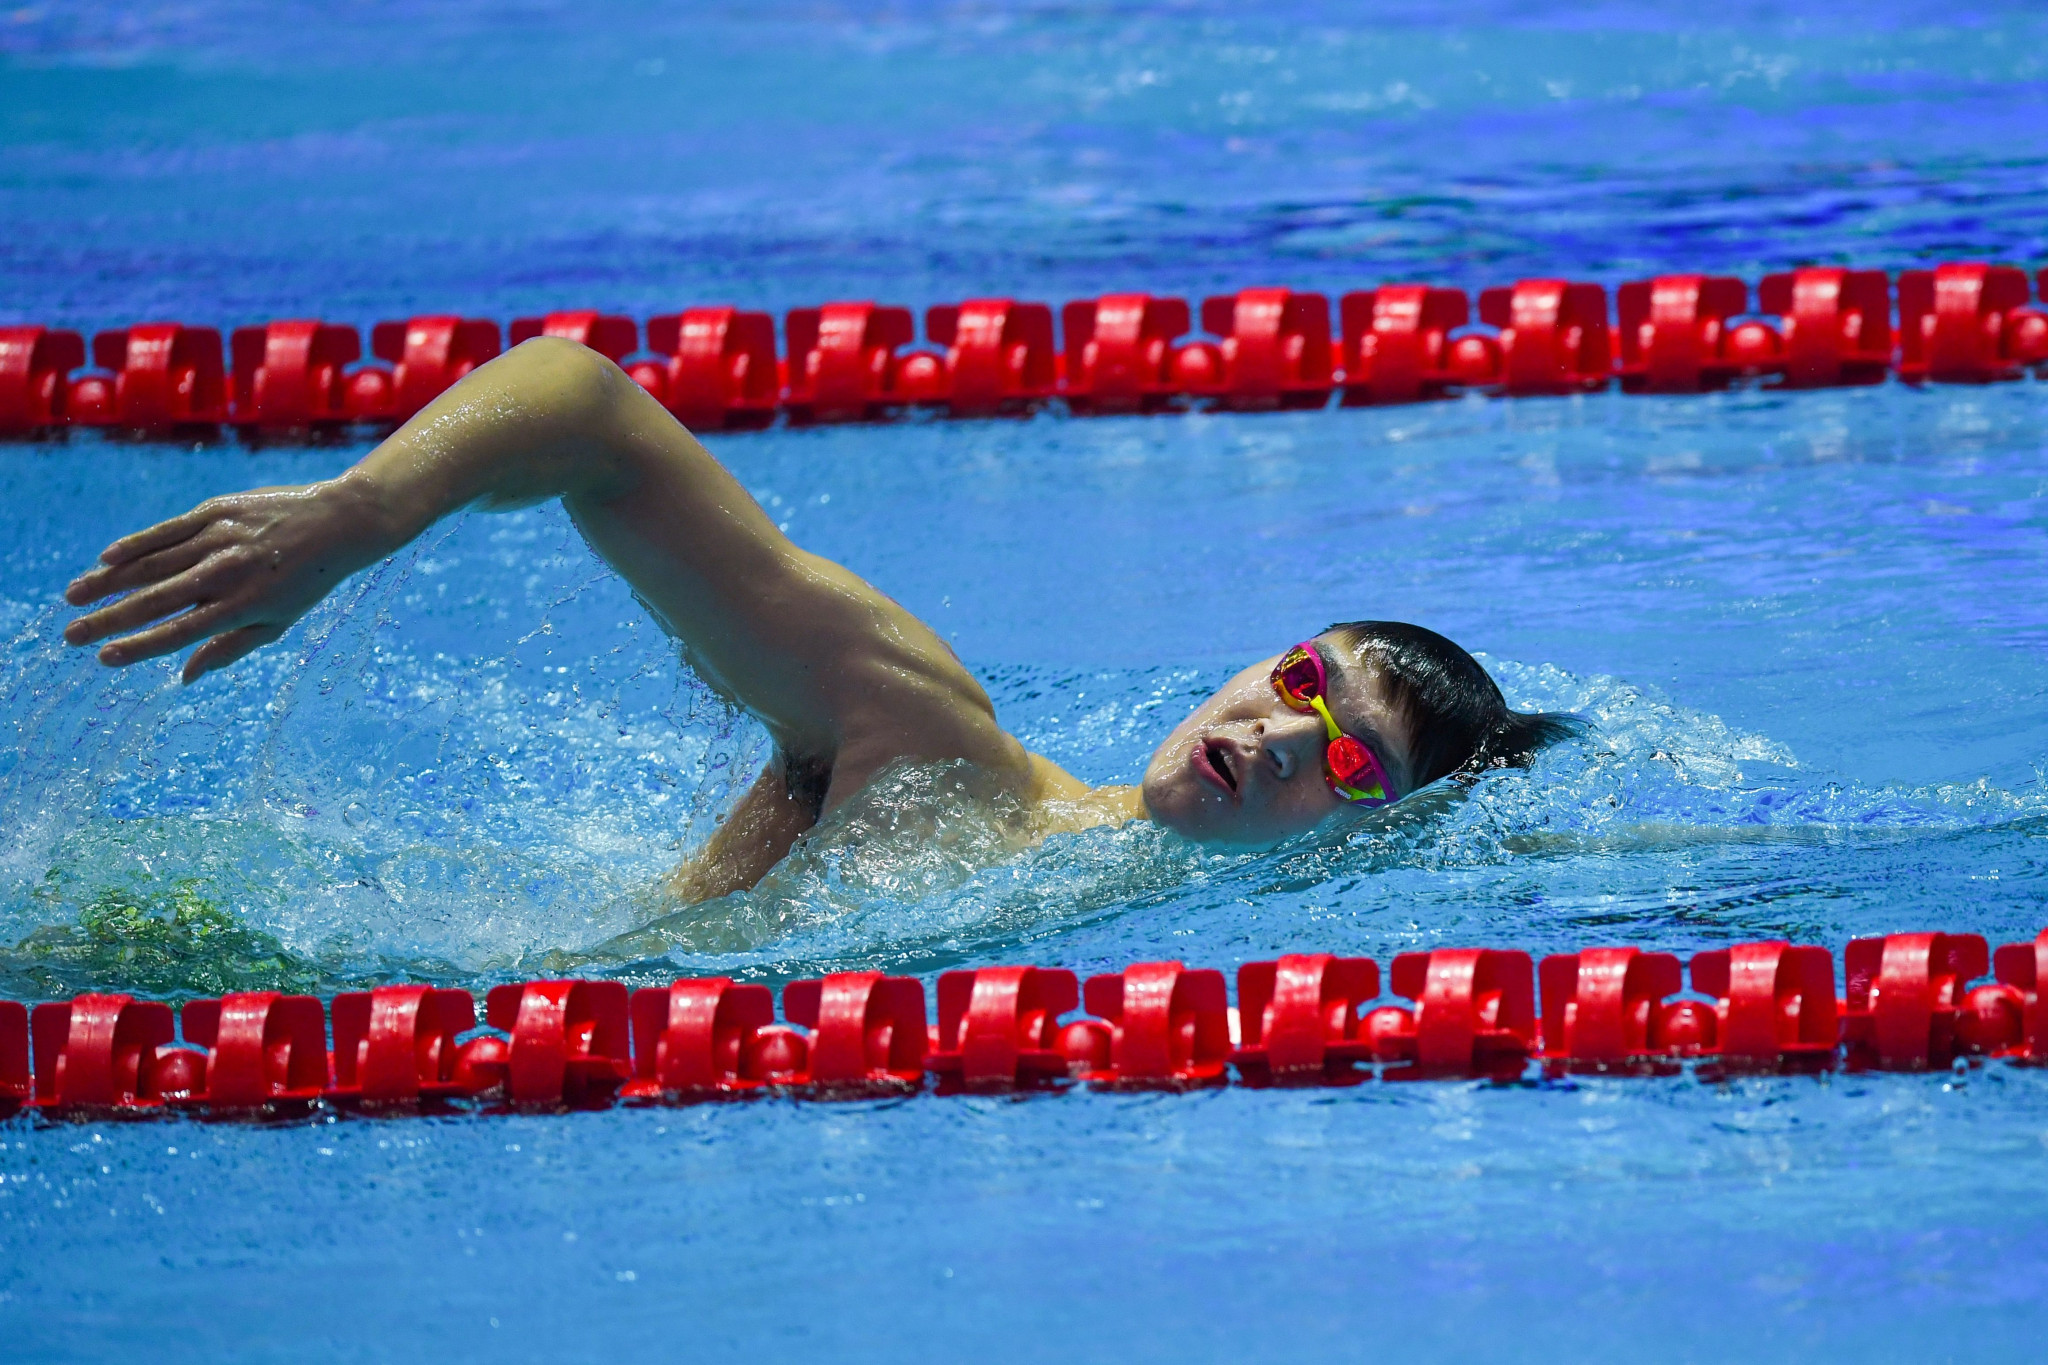 The International Swimming Federation issued China's Sun Yang with a warning after the controversial swimmer allegedly smashed a blood sample during a doping test earlier this year ©Getty Images